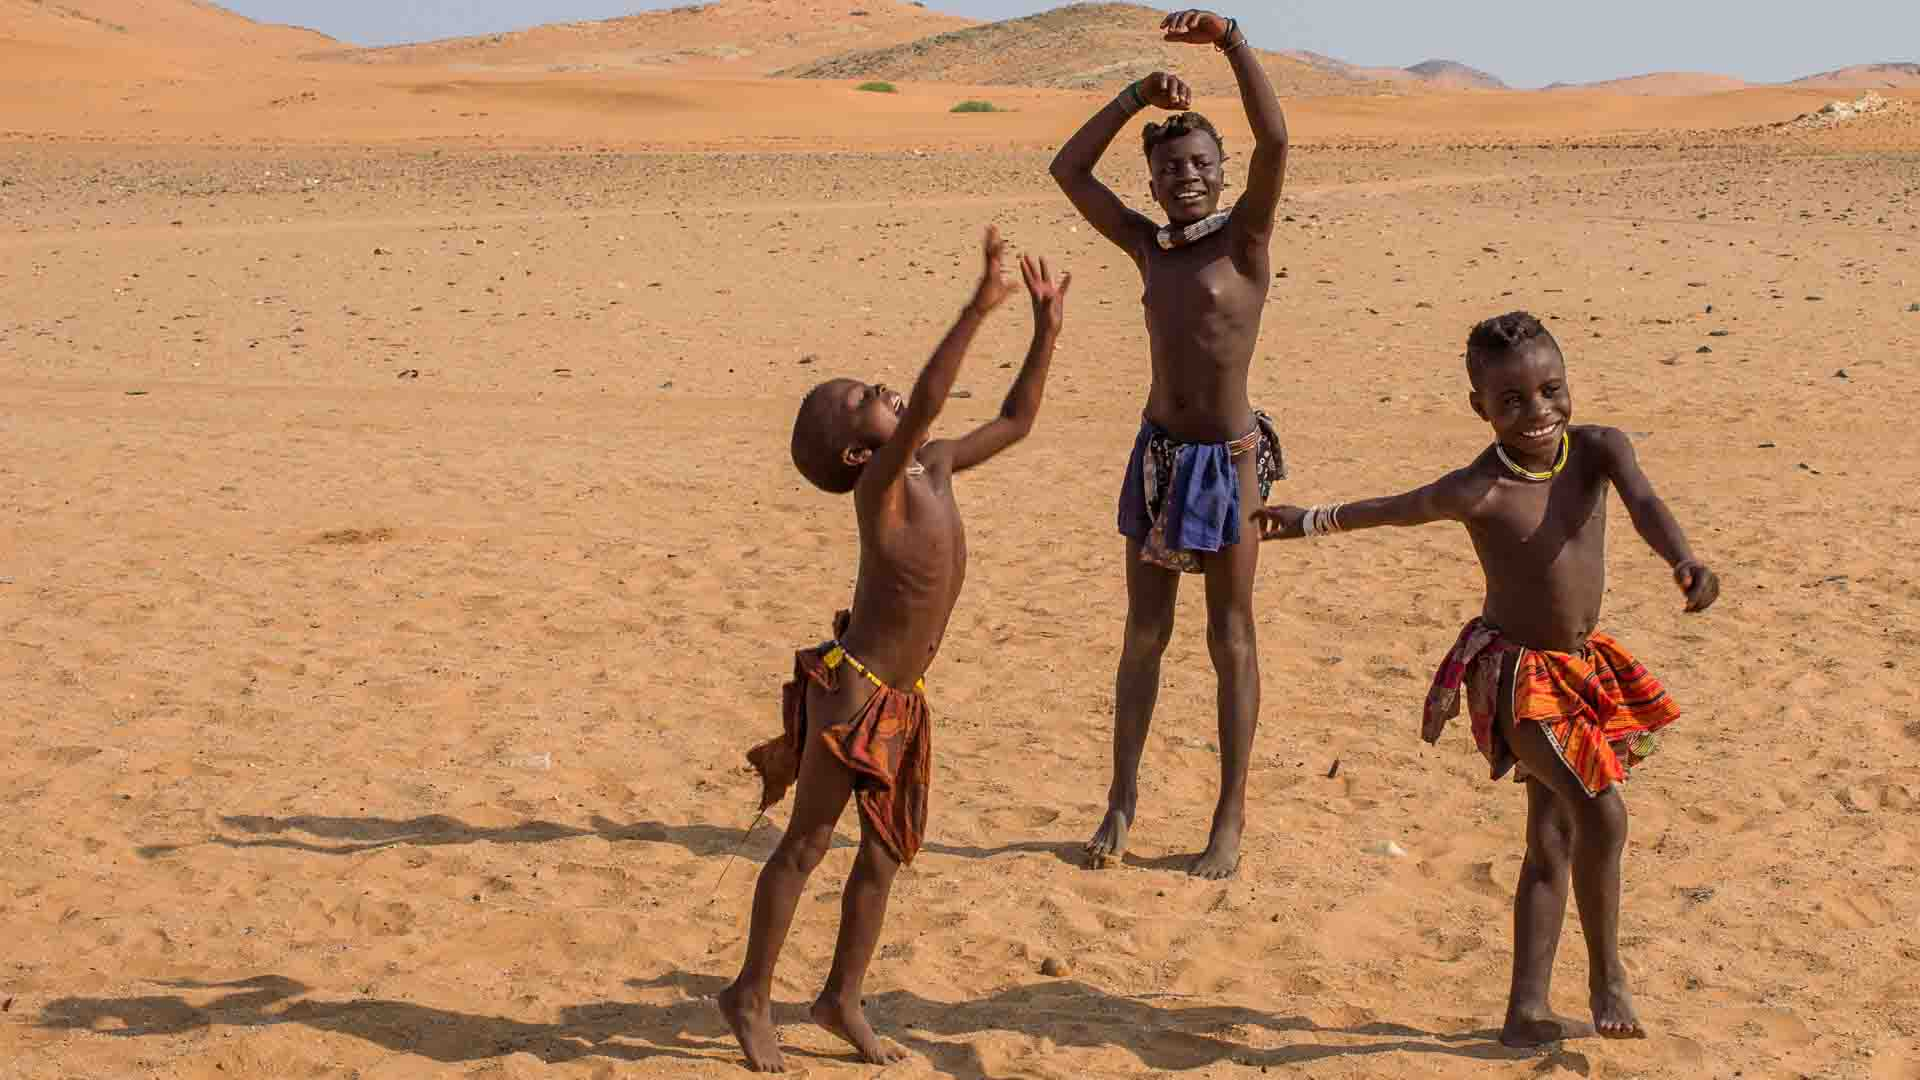 namibia-richard-denyer-himba-children